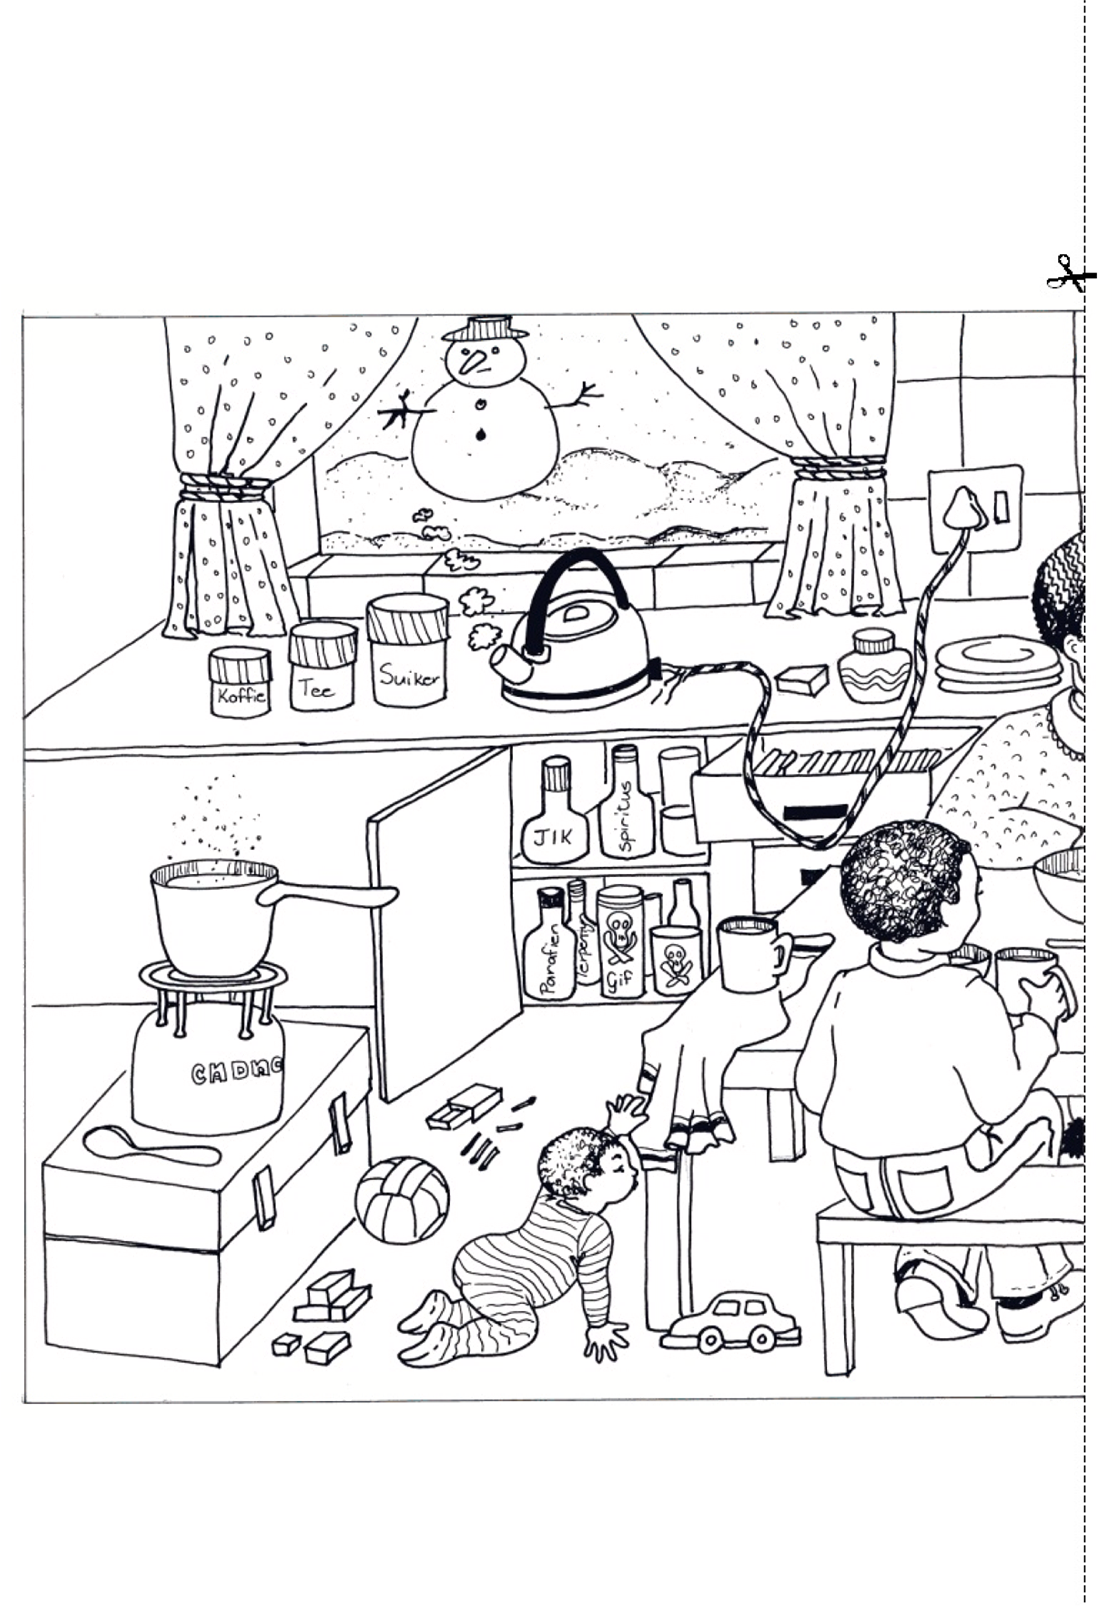 Transferable skills inventory worksheet abitlikethis for 5 kitchen safety hazards